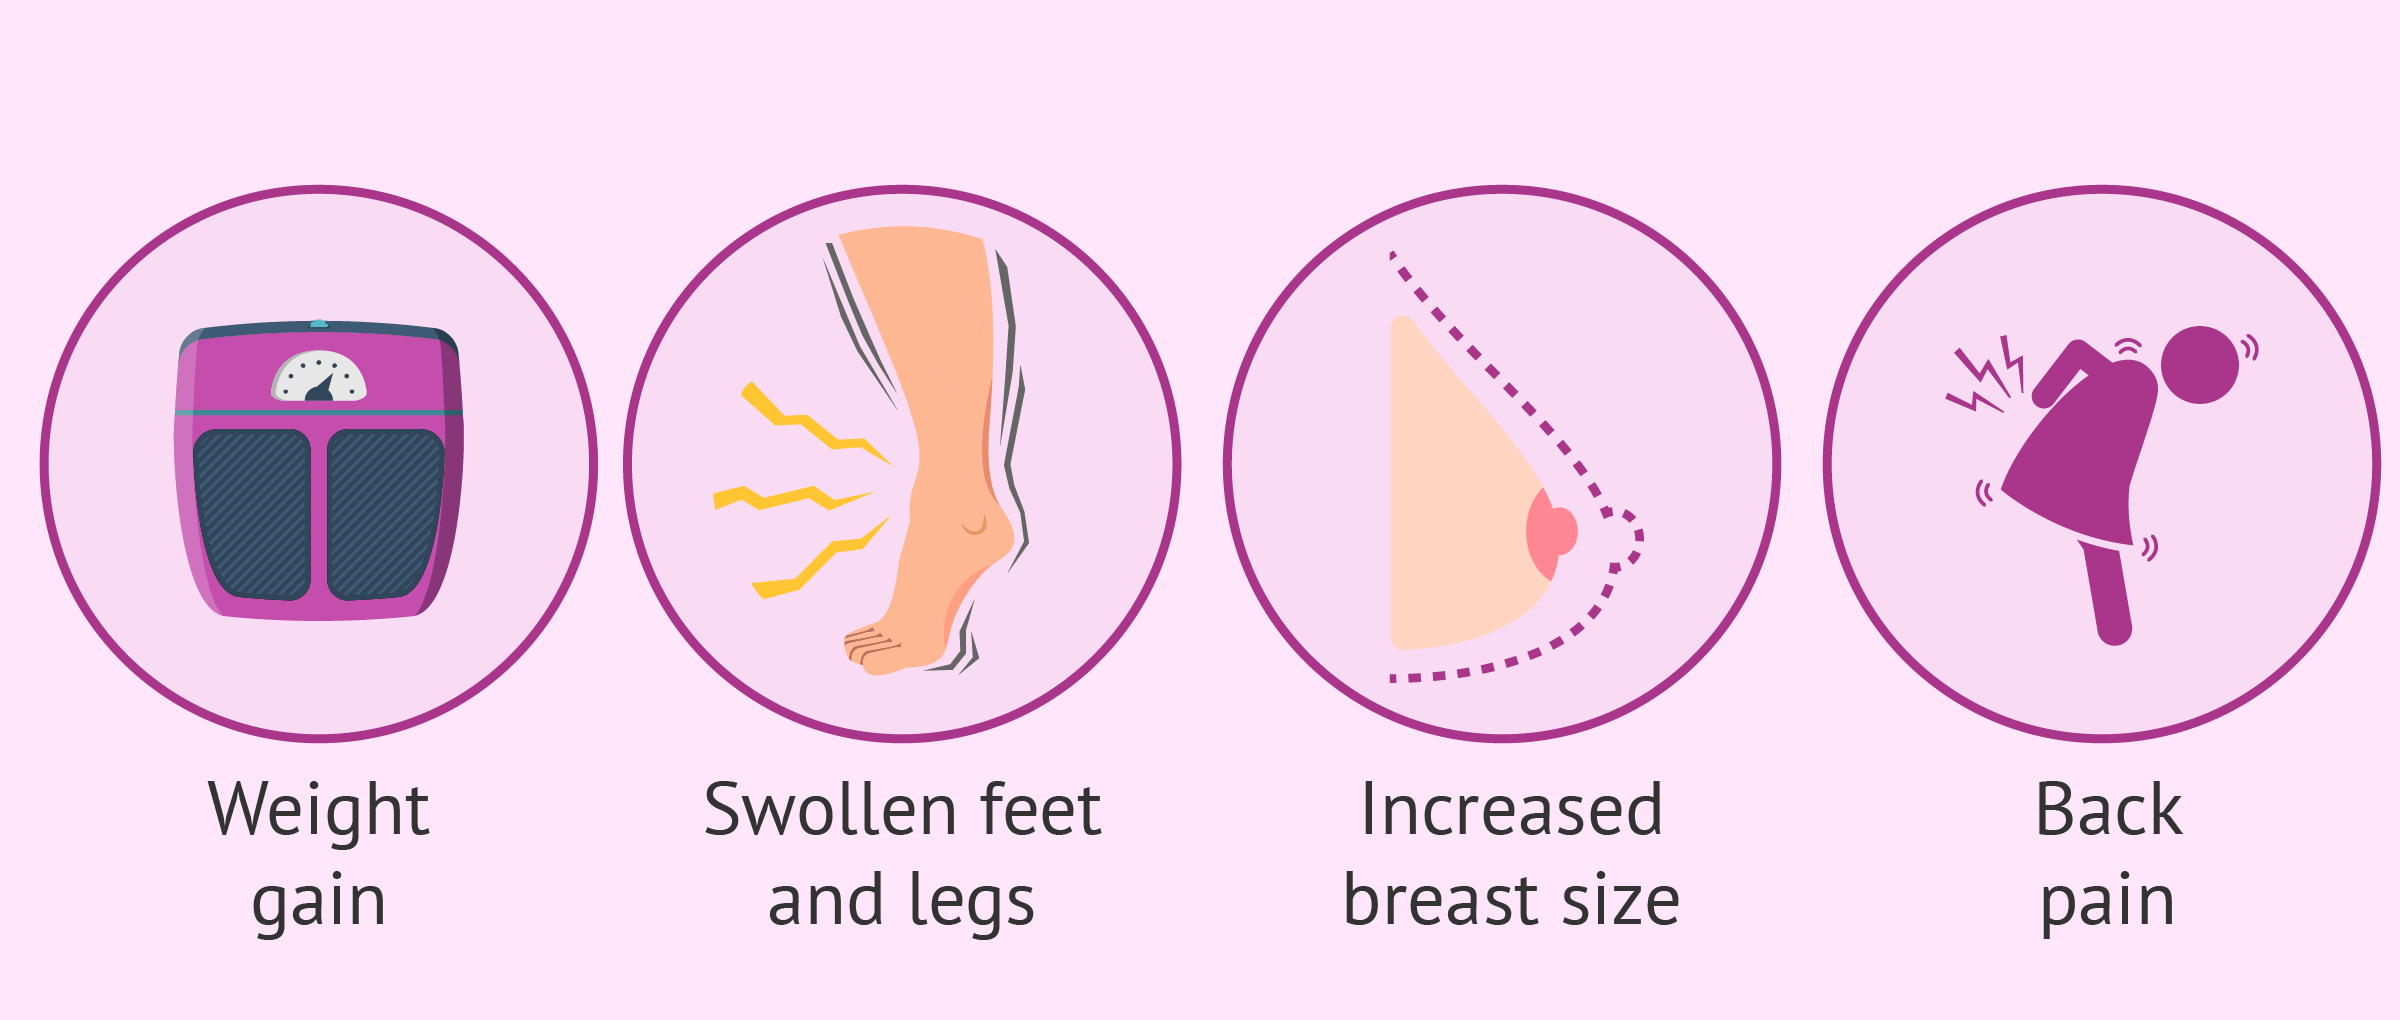 Common symptoms during month 5 of pregnancy